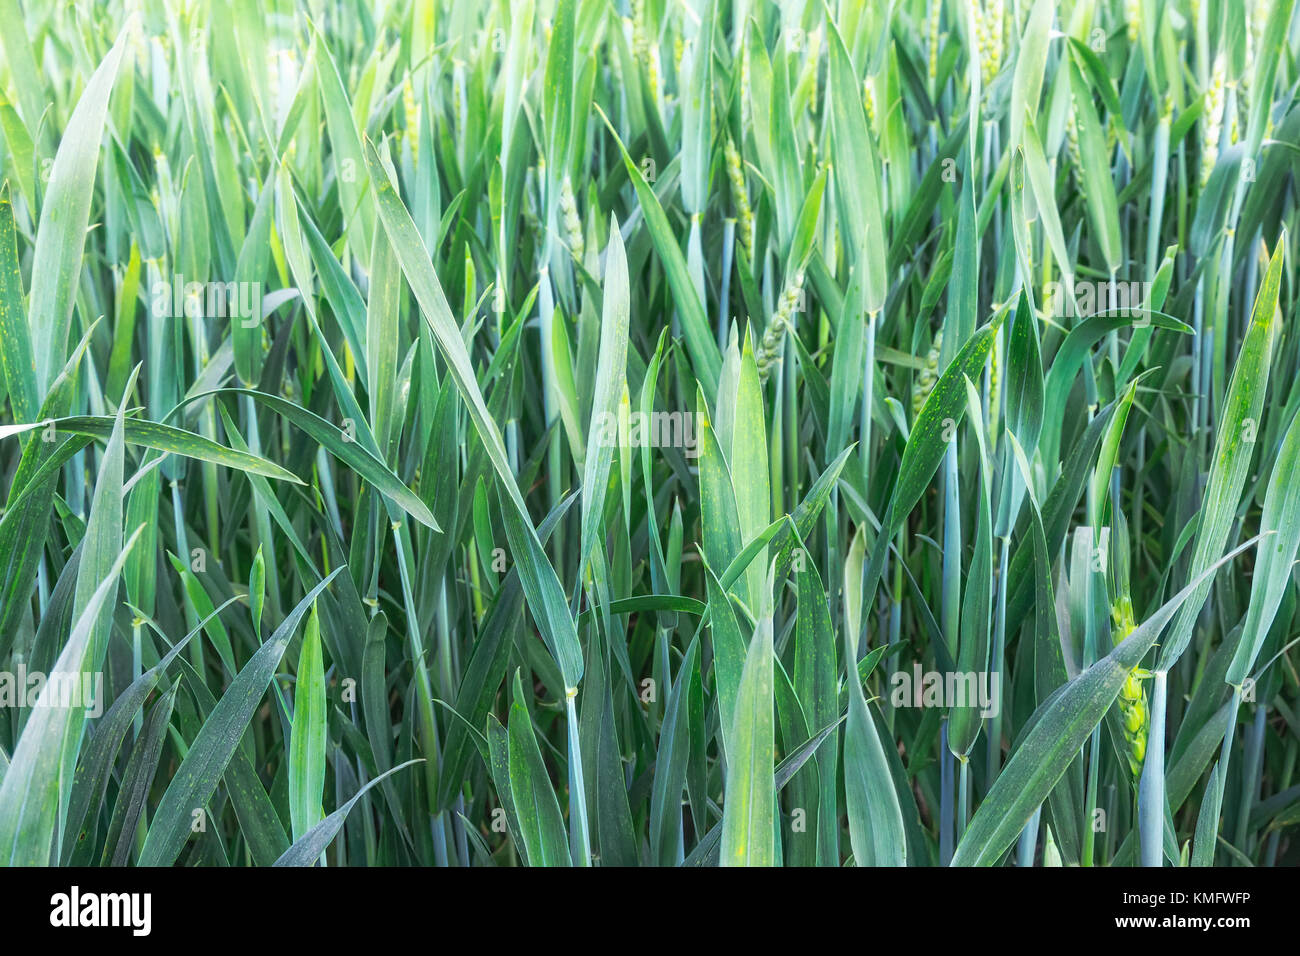 On the field growing young green wheat. Presents close-up. Stock Photo